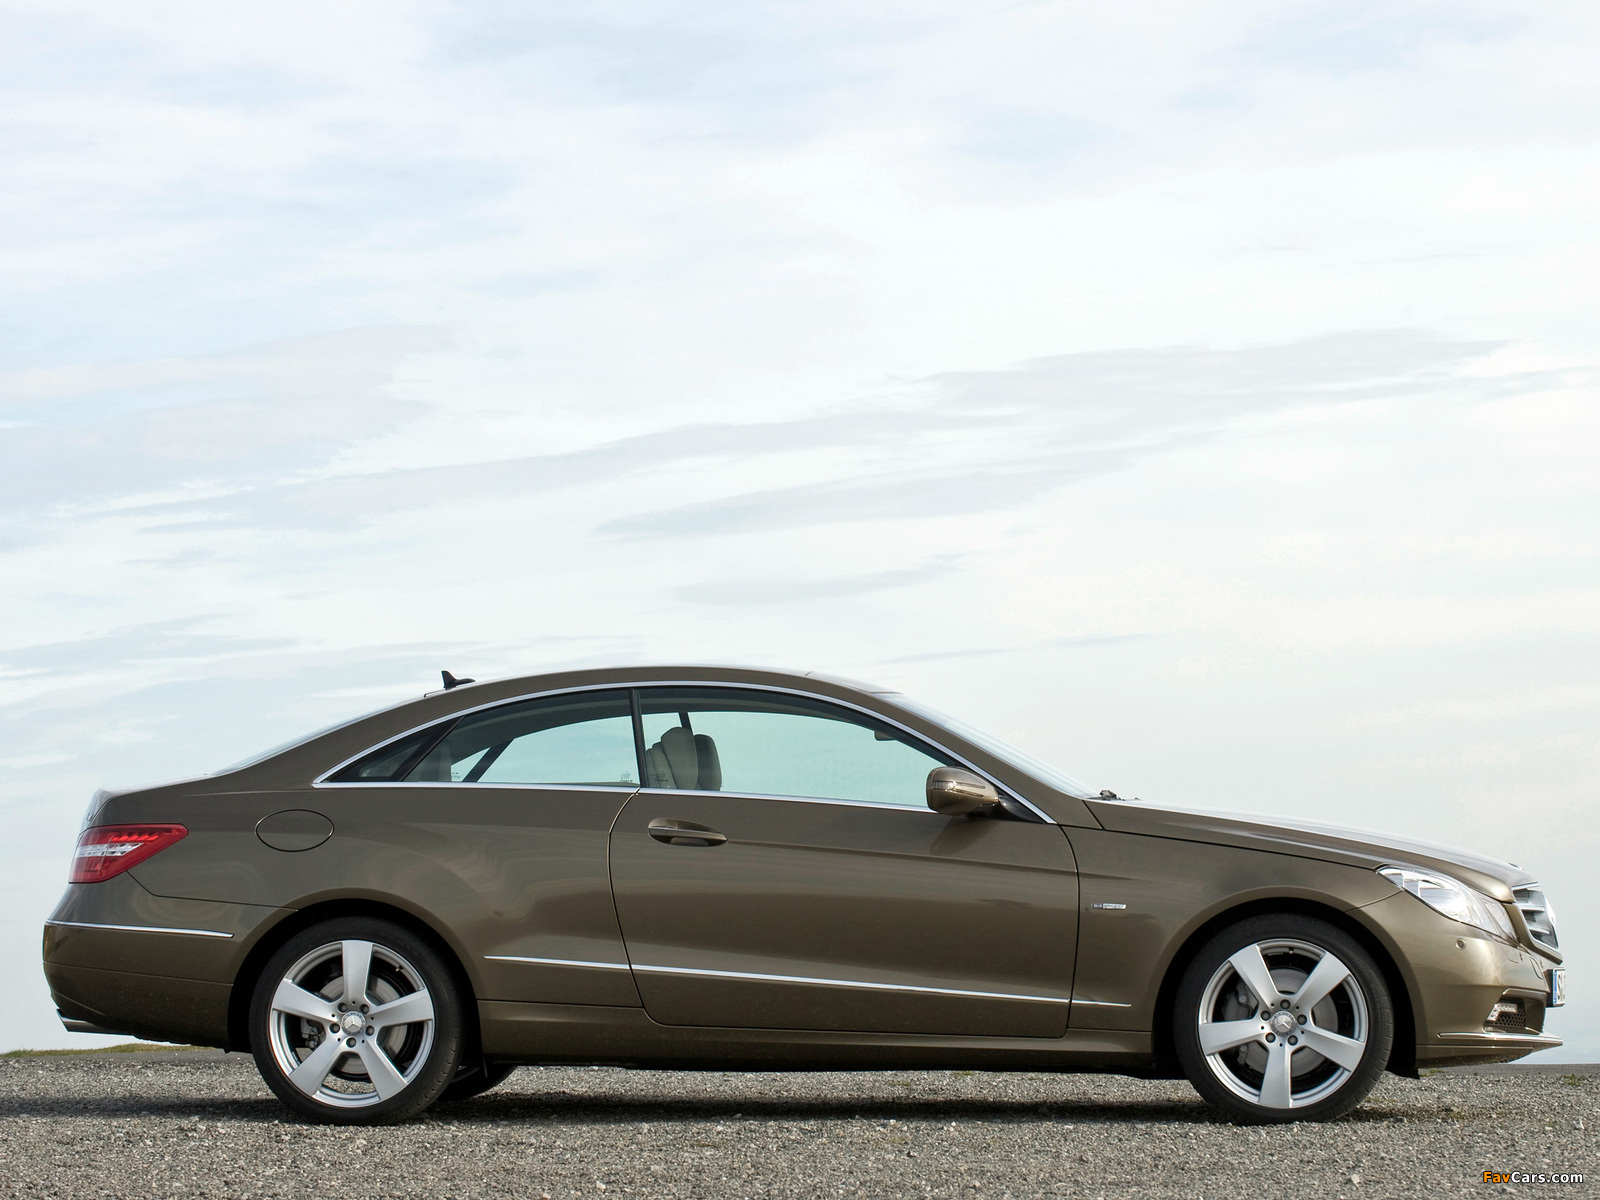 Wallpapers Of Mercedes Benz E 350 Cdi Coupe C207 2009 12